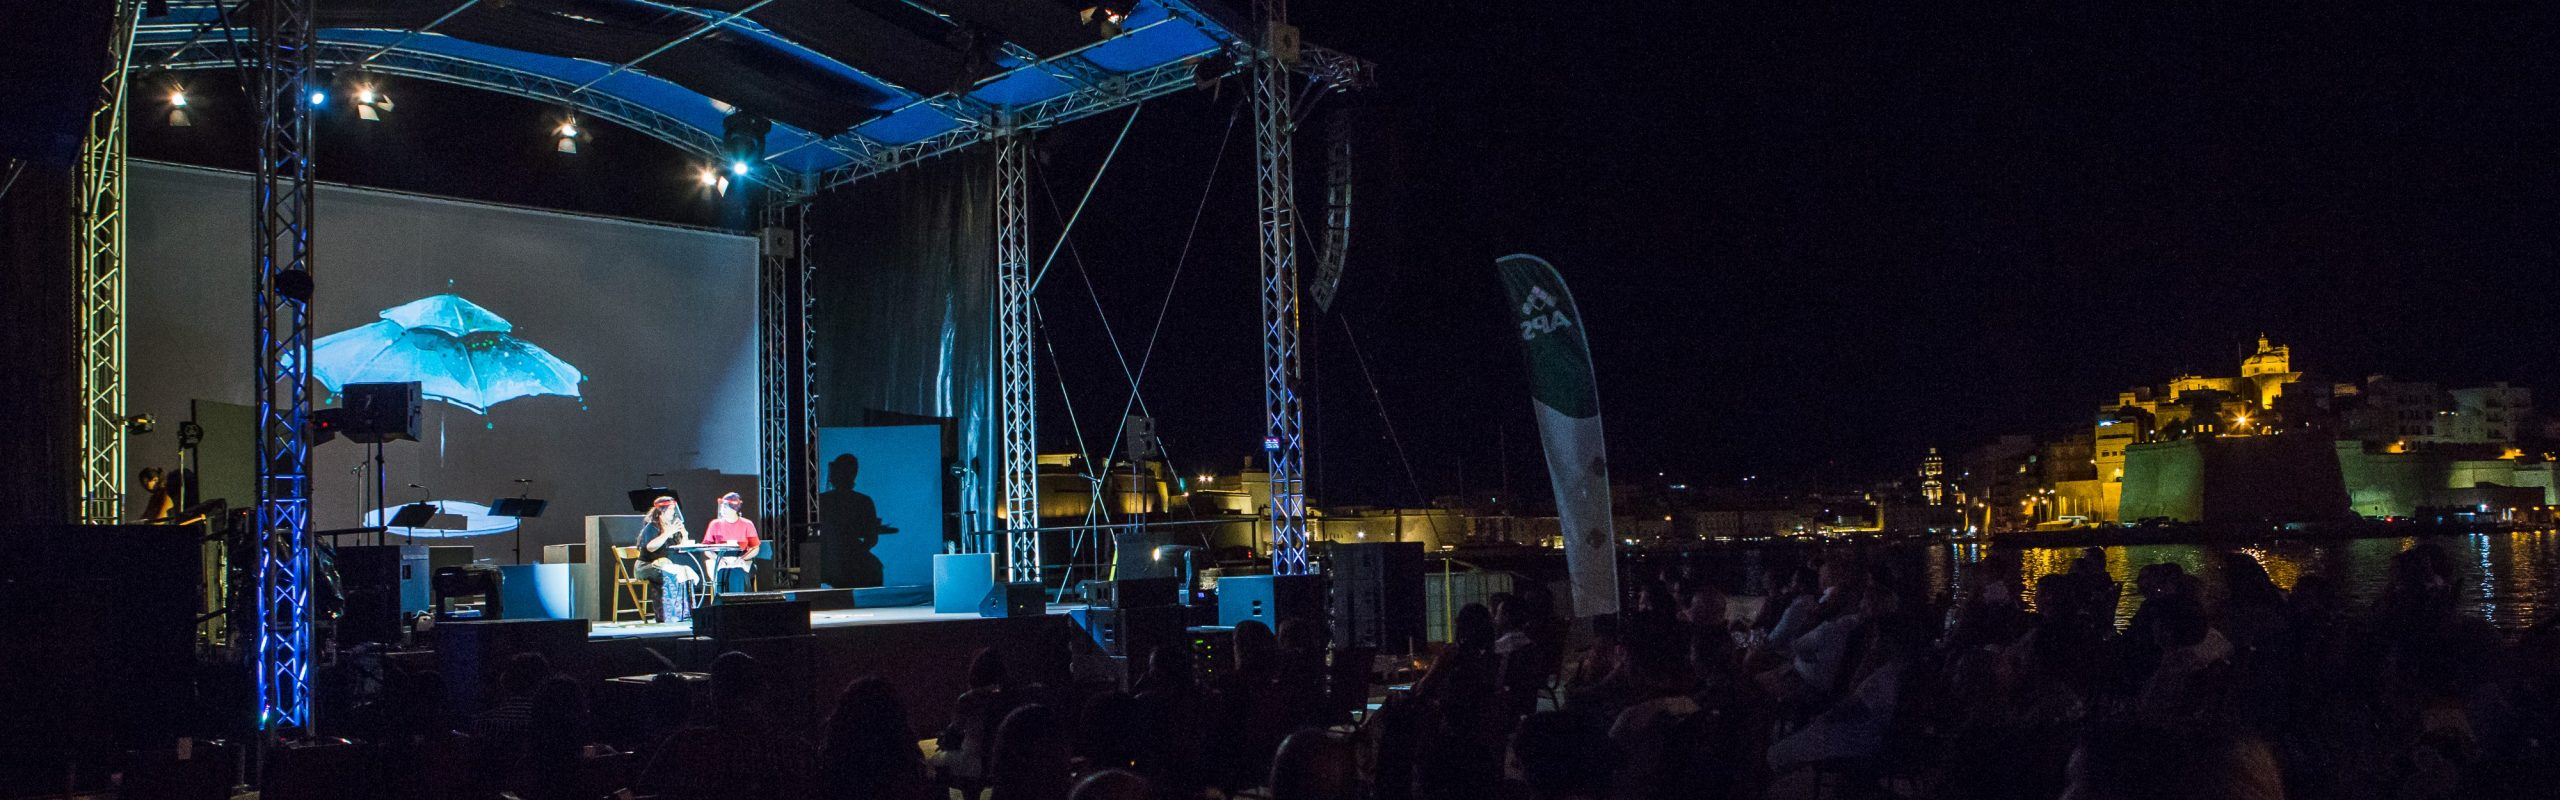 APS Summer Festival organised by the Malta Philharmonic Orchestra